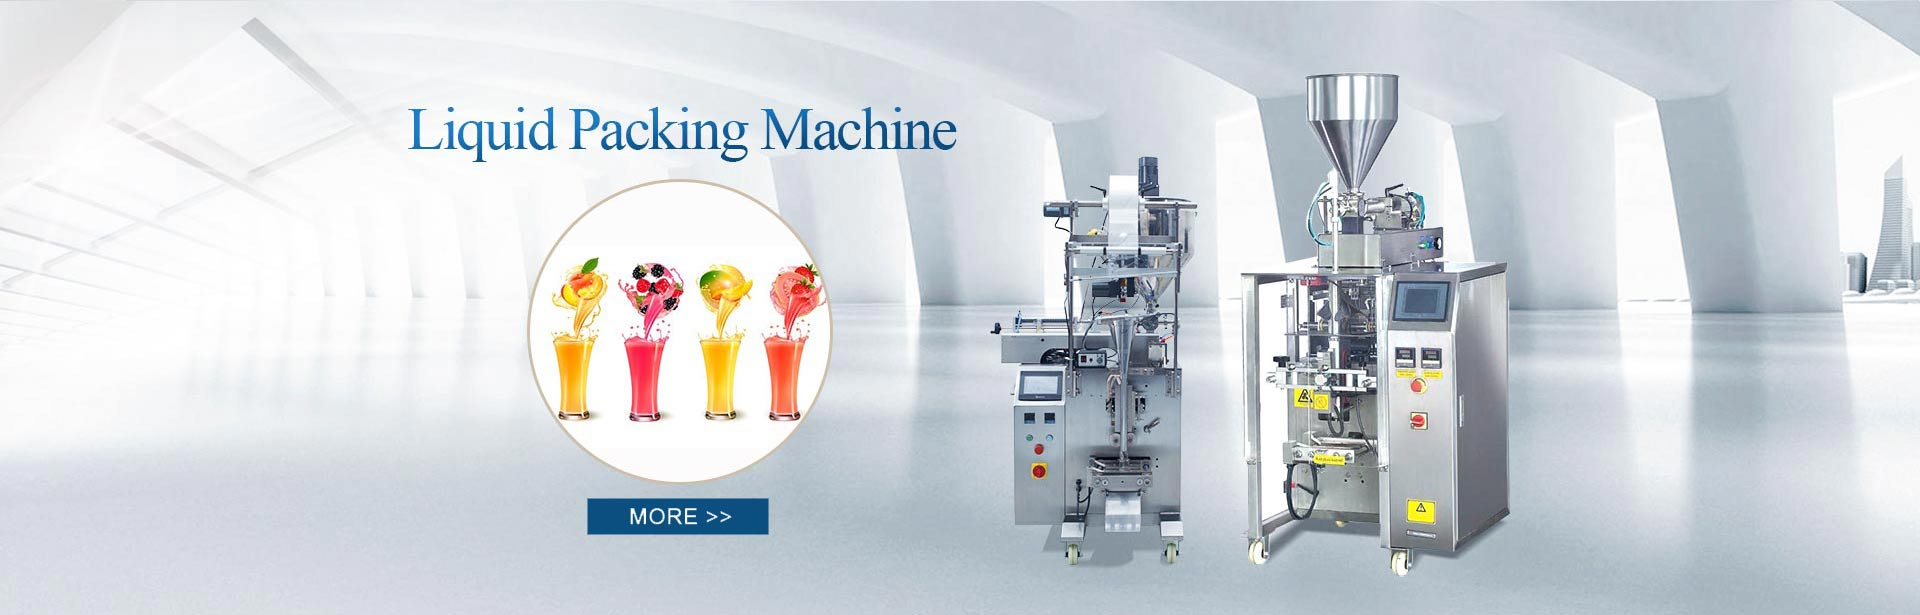 Liquid Packing Machine